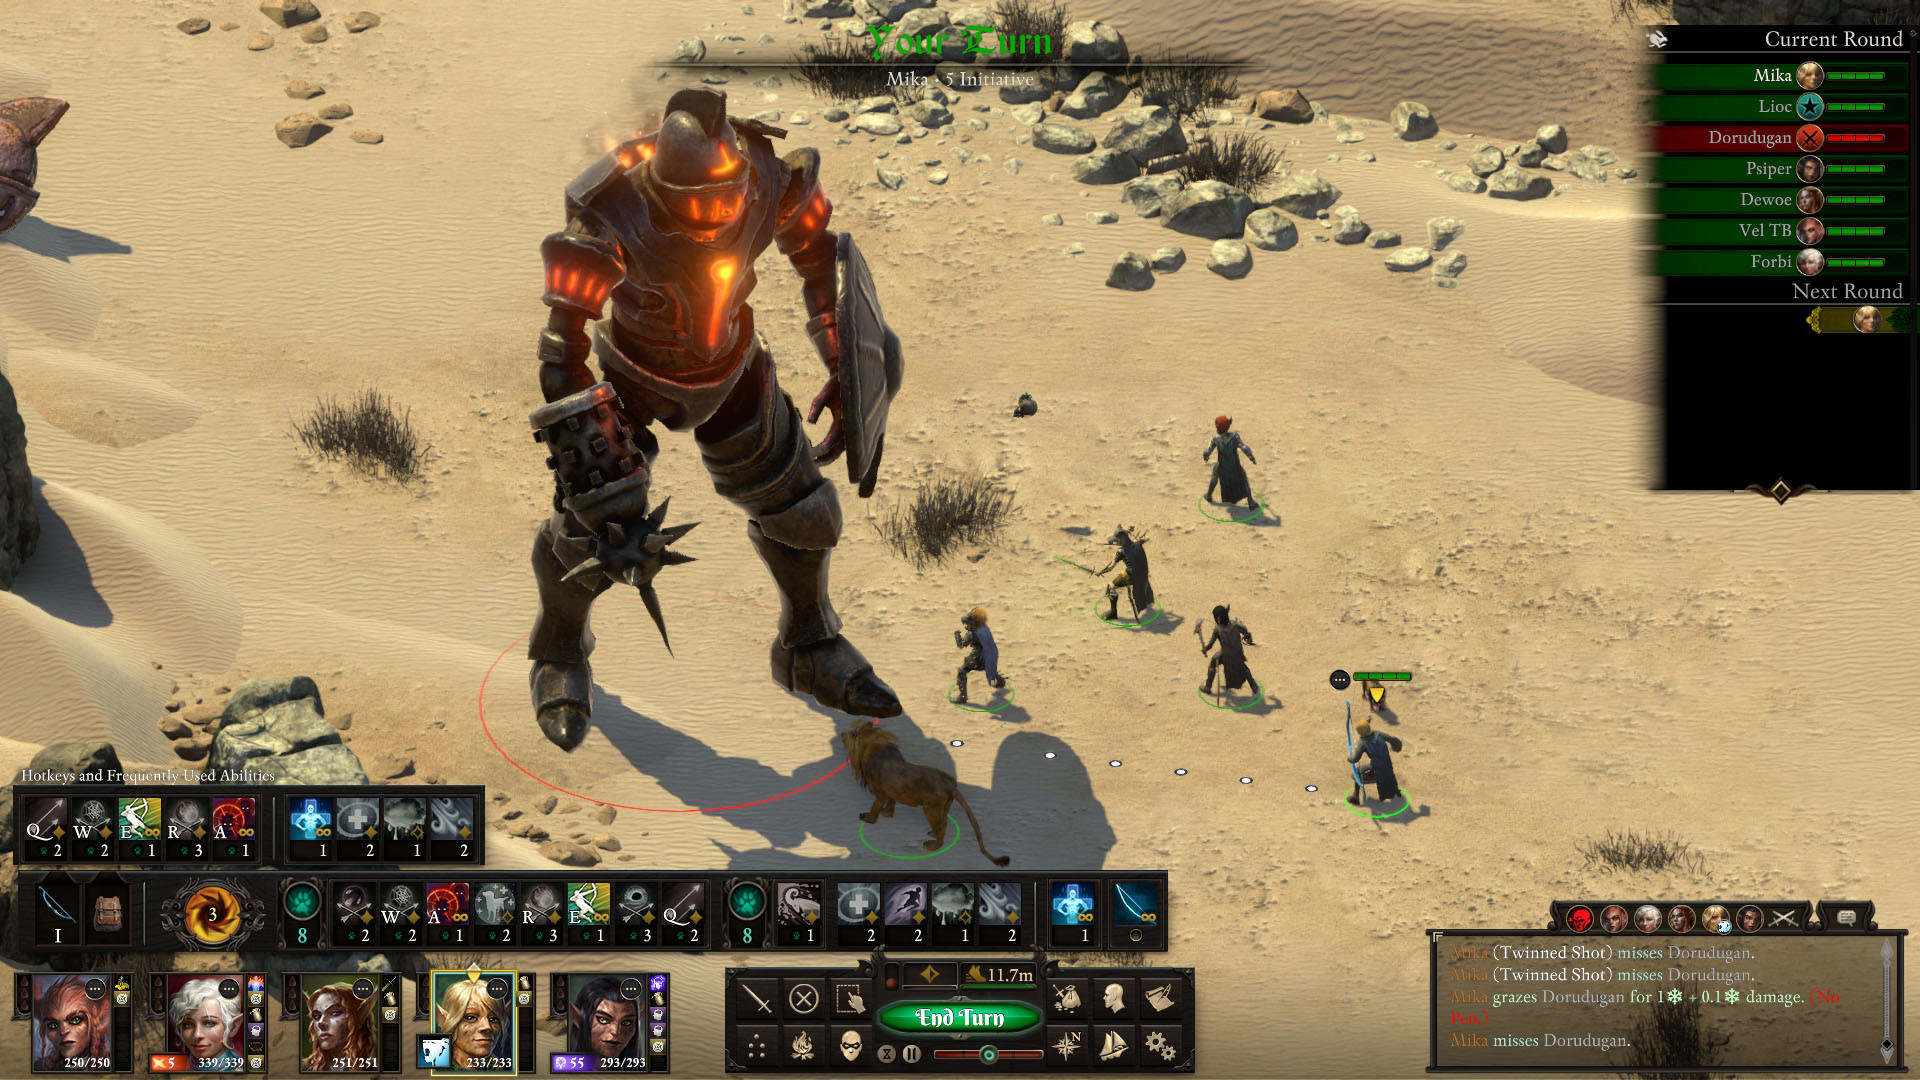 Pillars of Eternity 2 is so much better thanks to the new